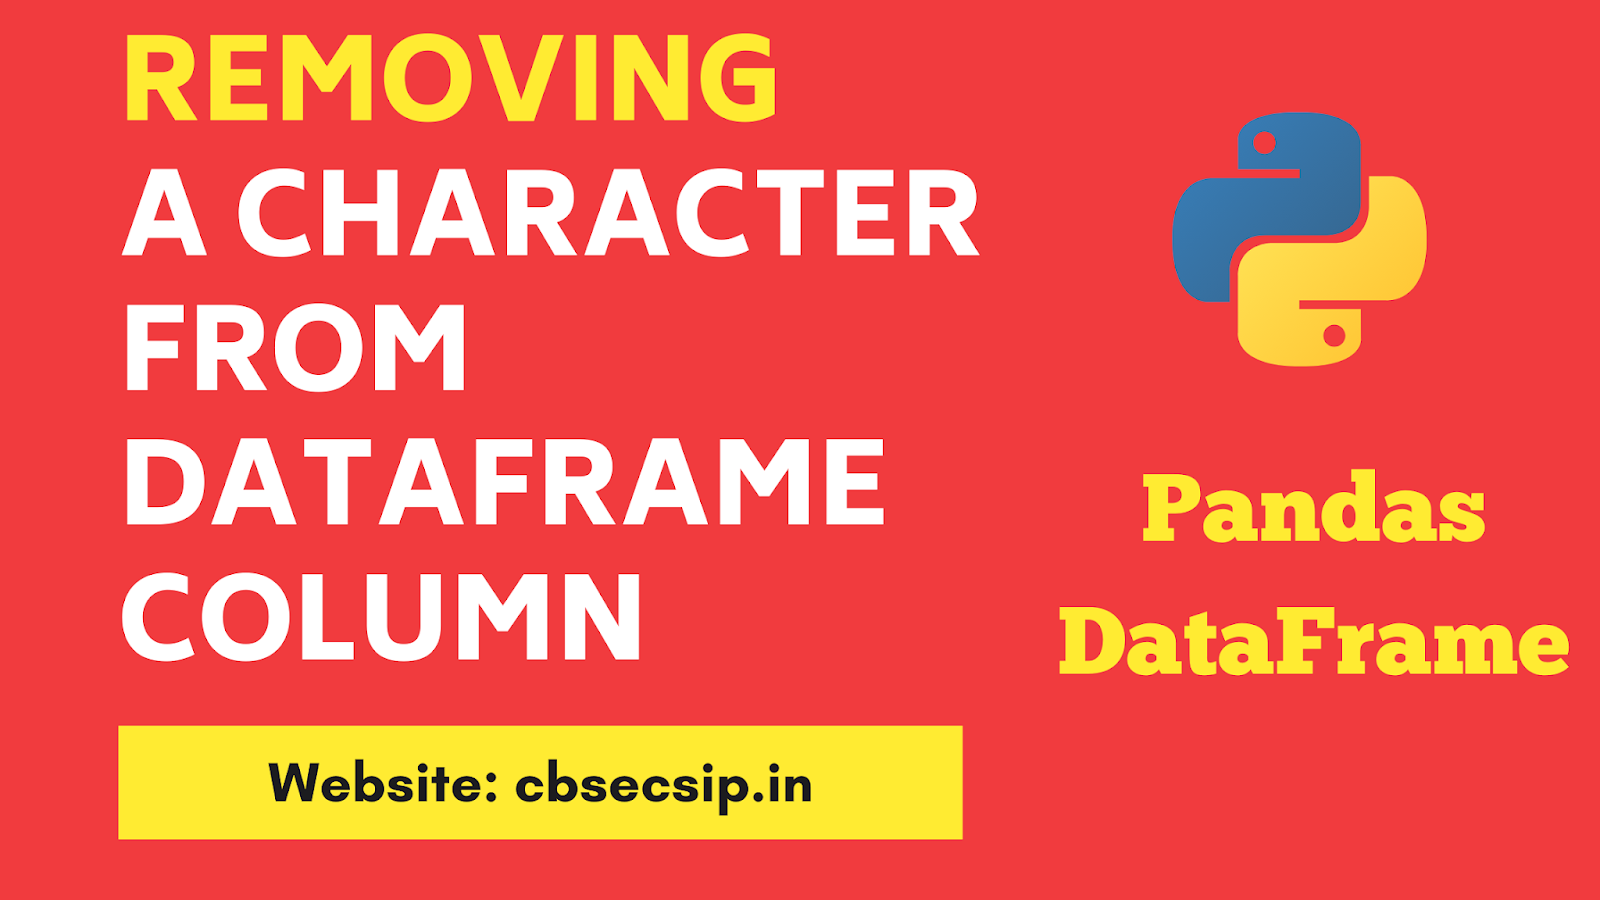 removing a character from dataframe column